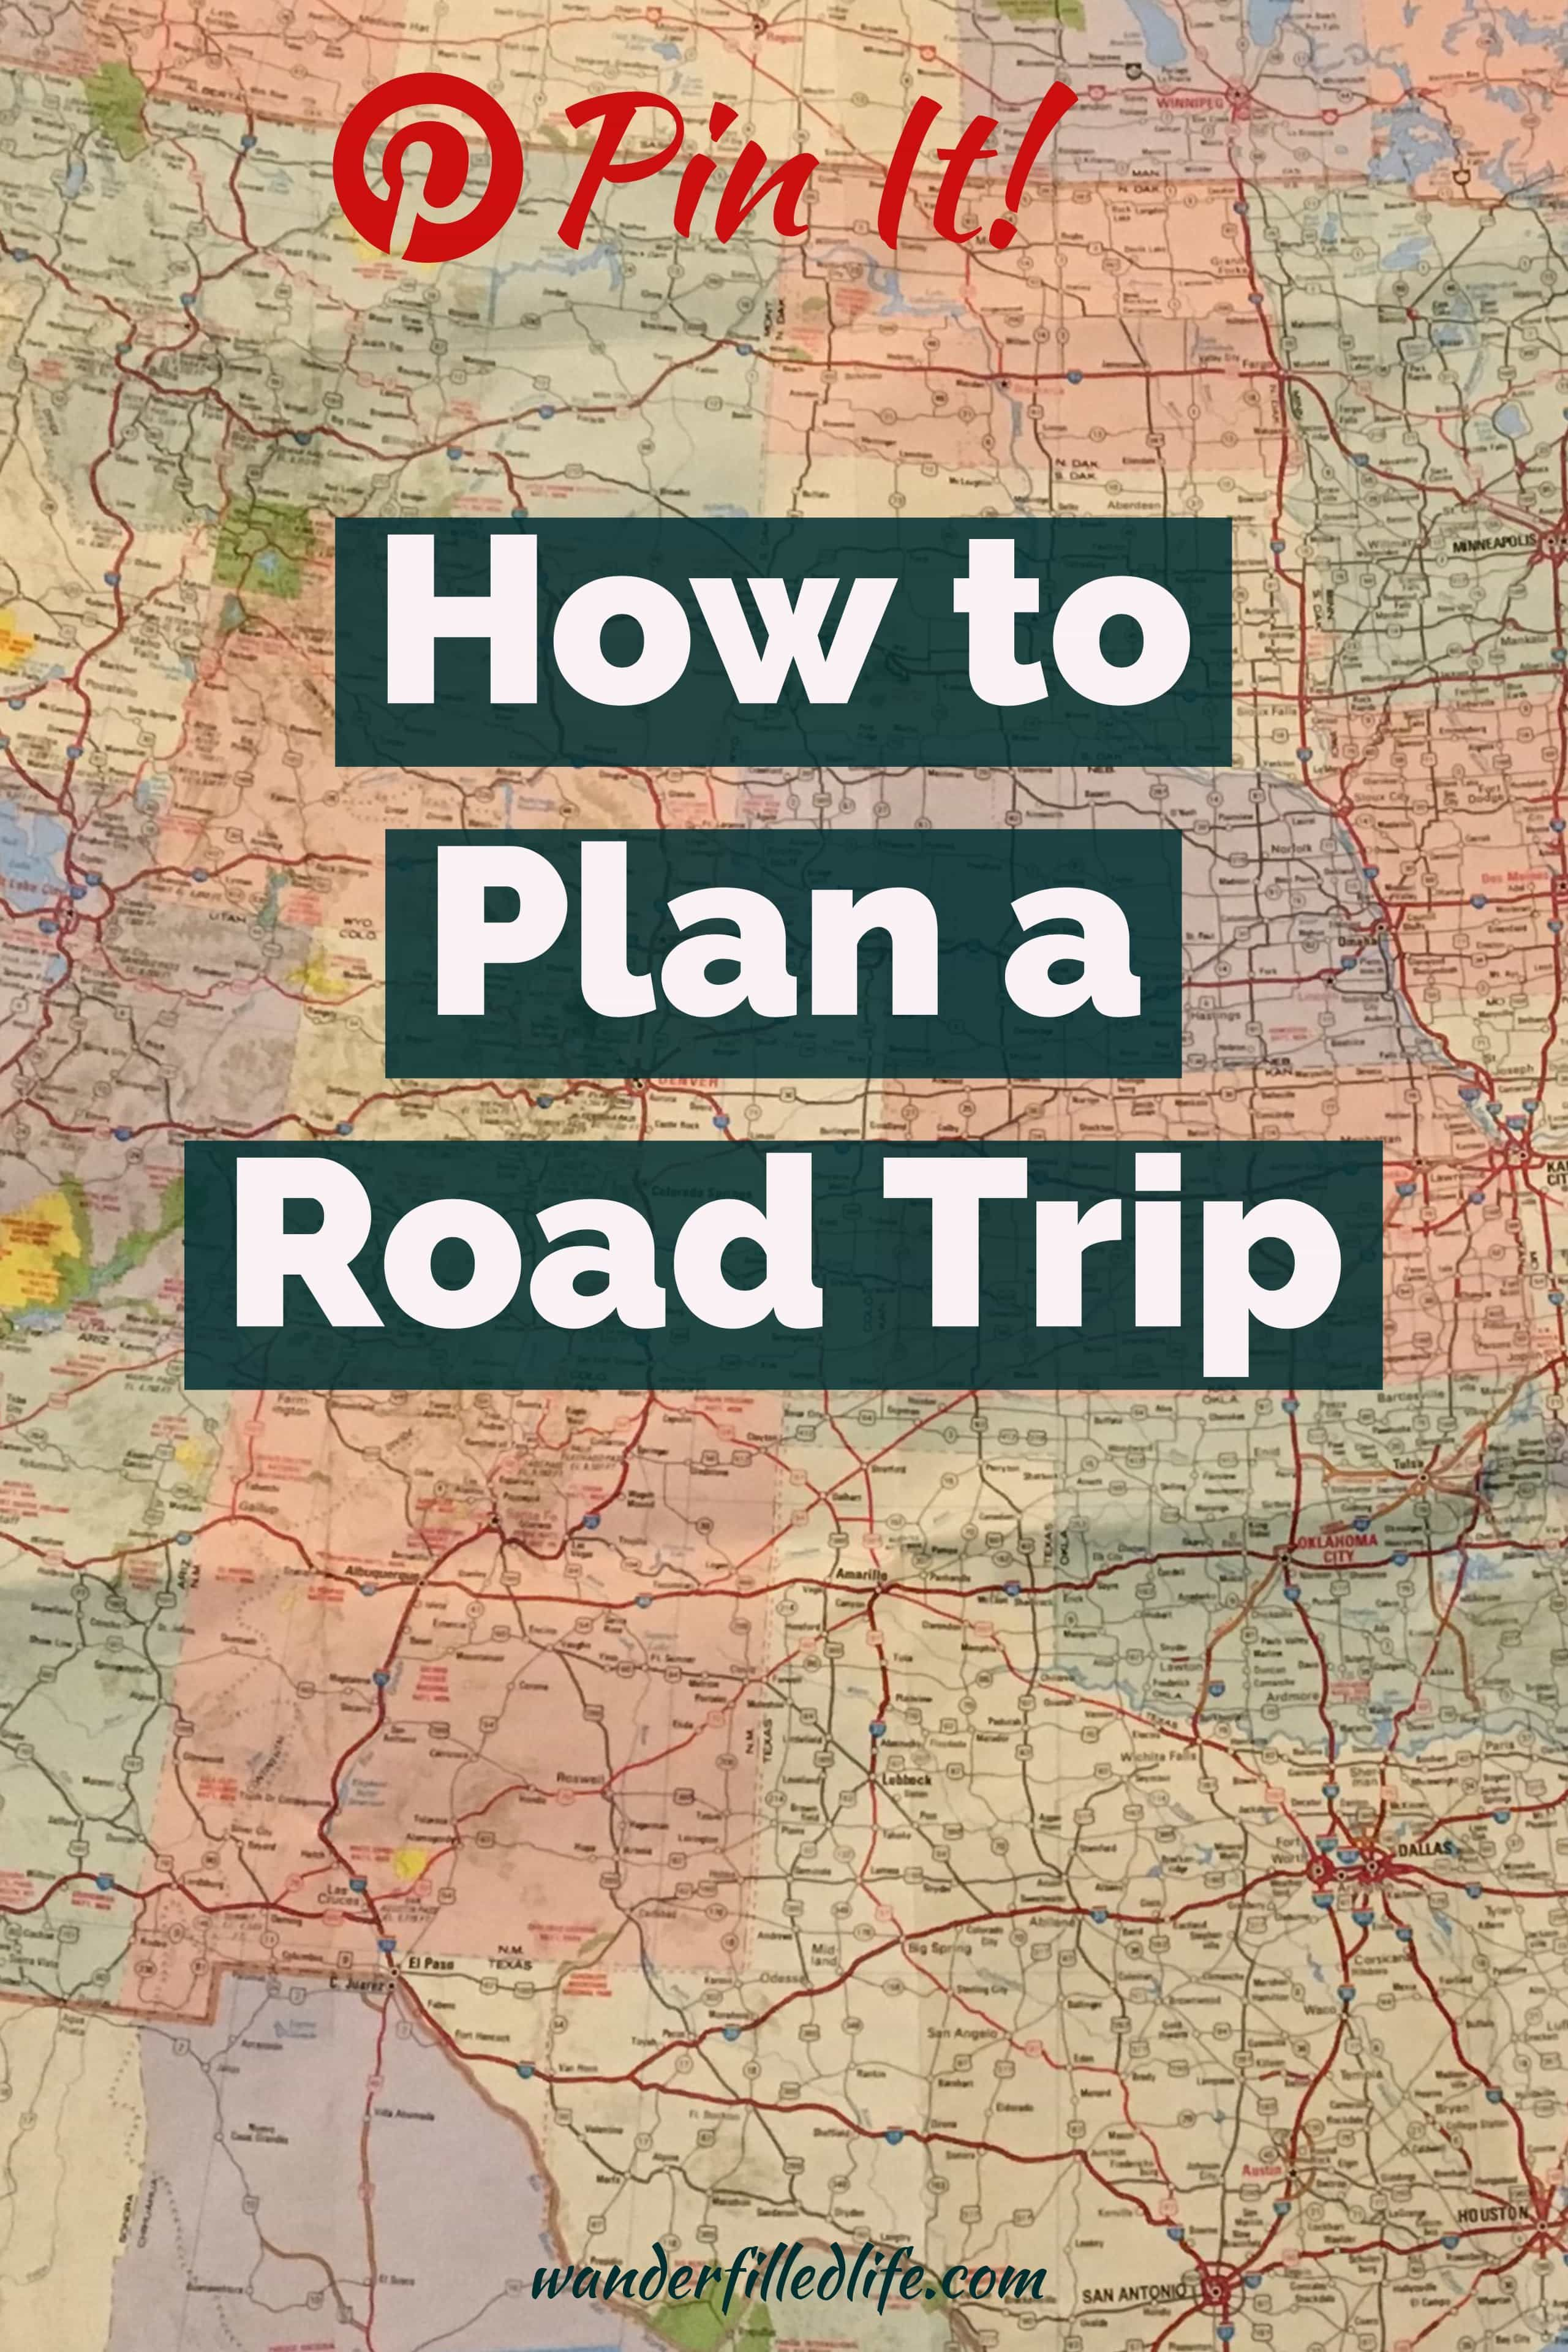 How to Plan a Road Trip: Itinerary, Route, Budget and More